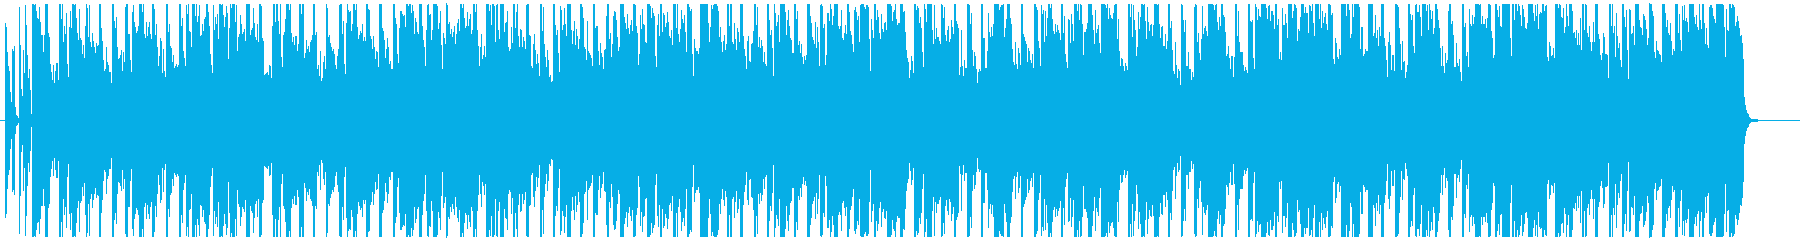 Four-on-the-floor city pop with a fashionable atmosphere's reproduced waveform